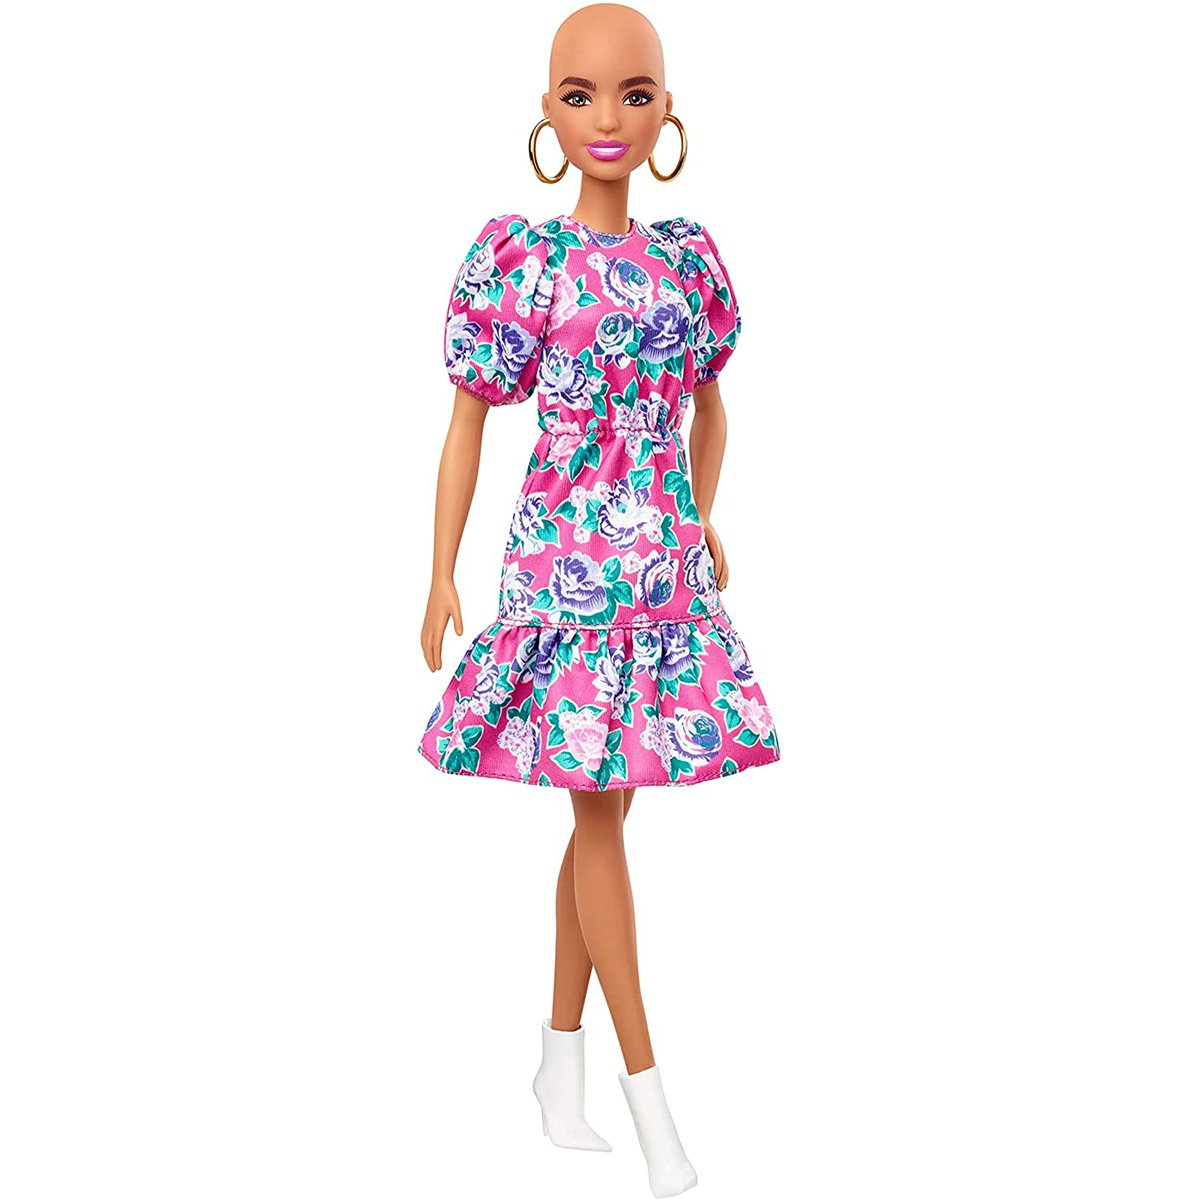 Papusa Barbie Fashionistas, 150, GYB03